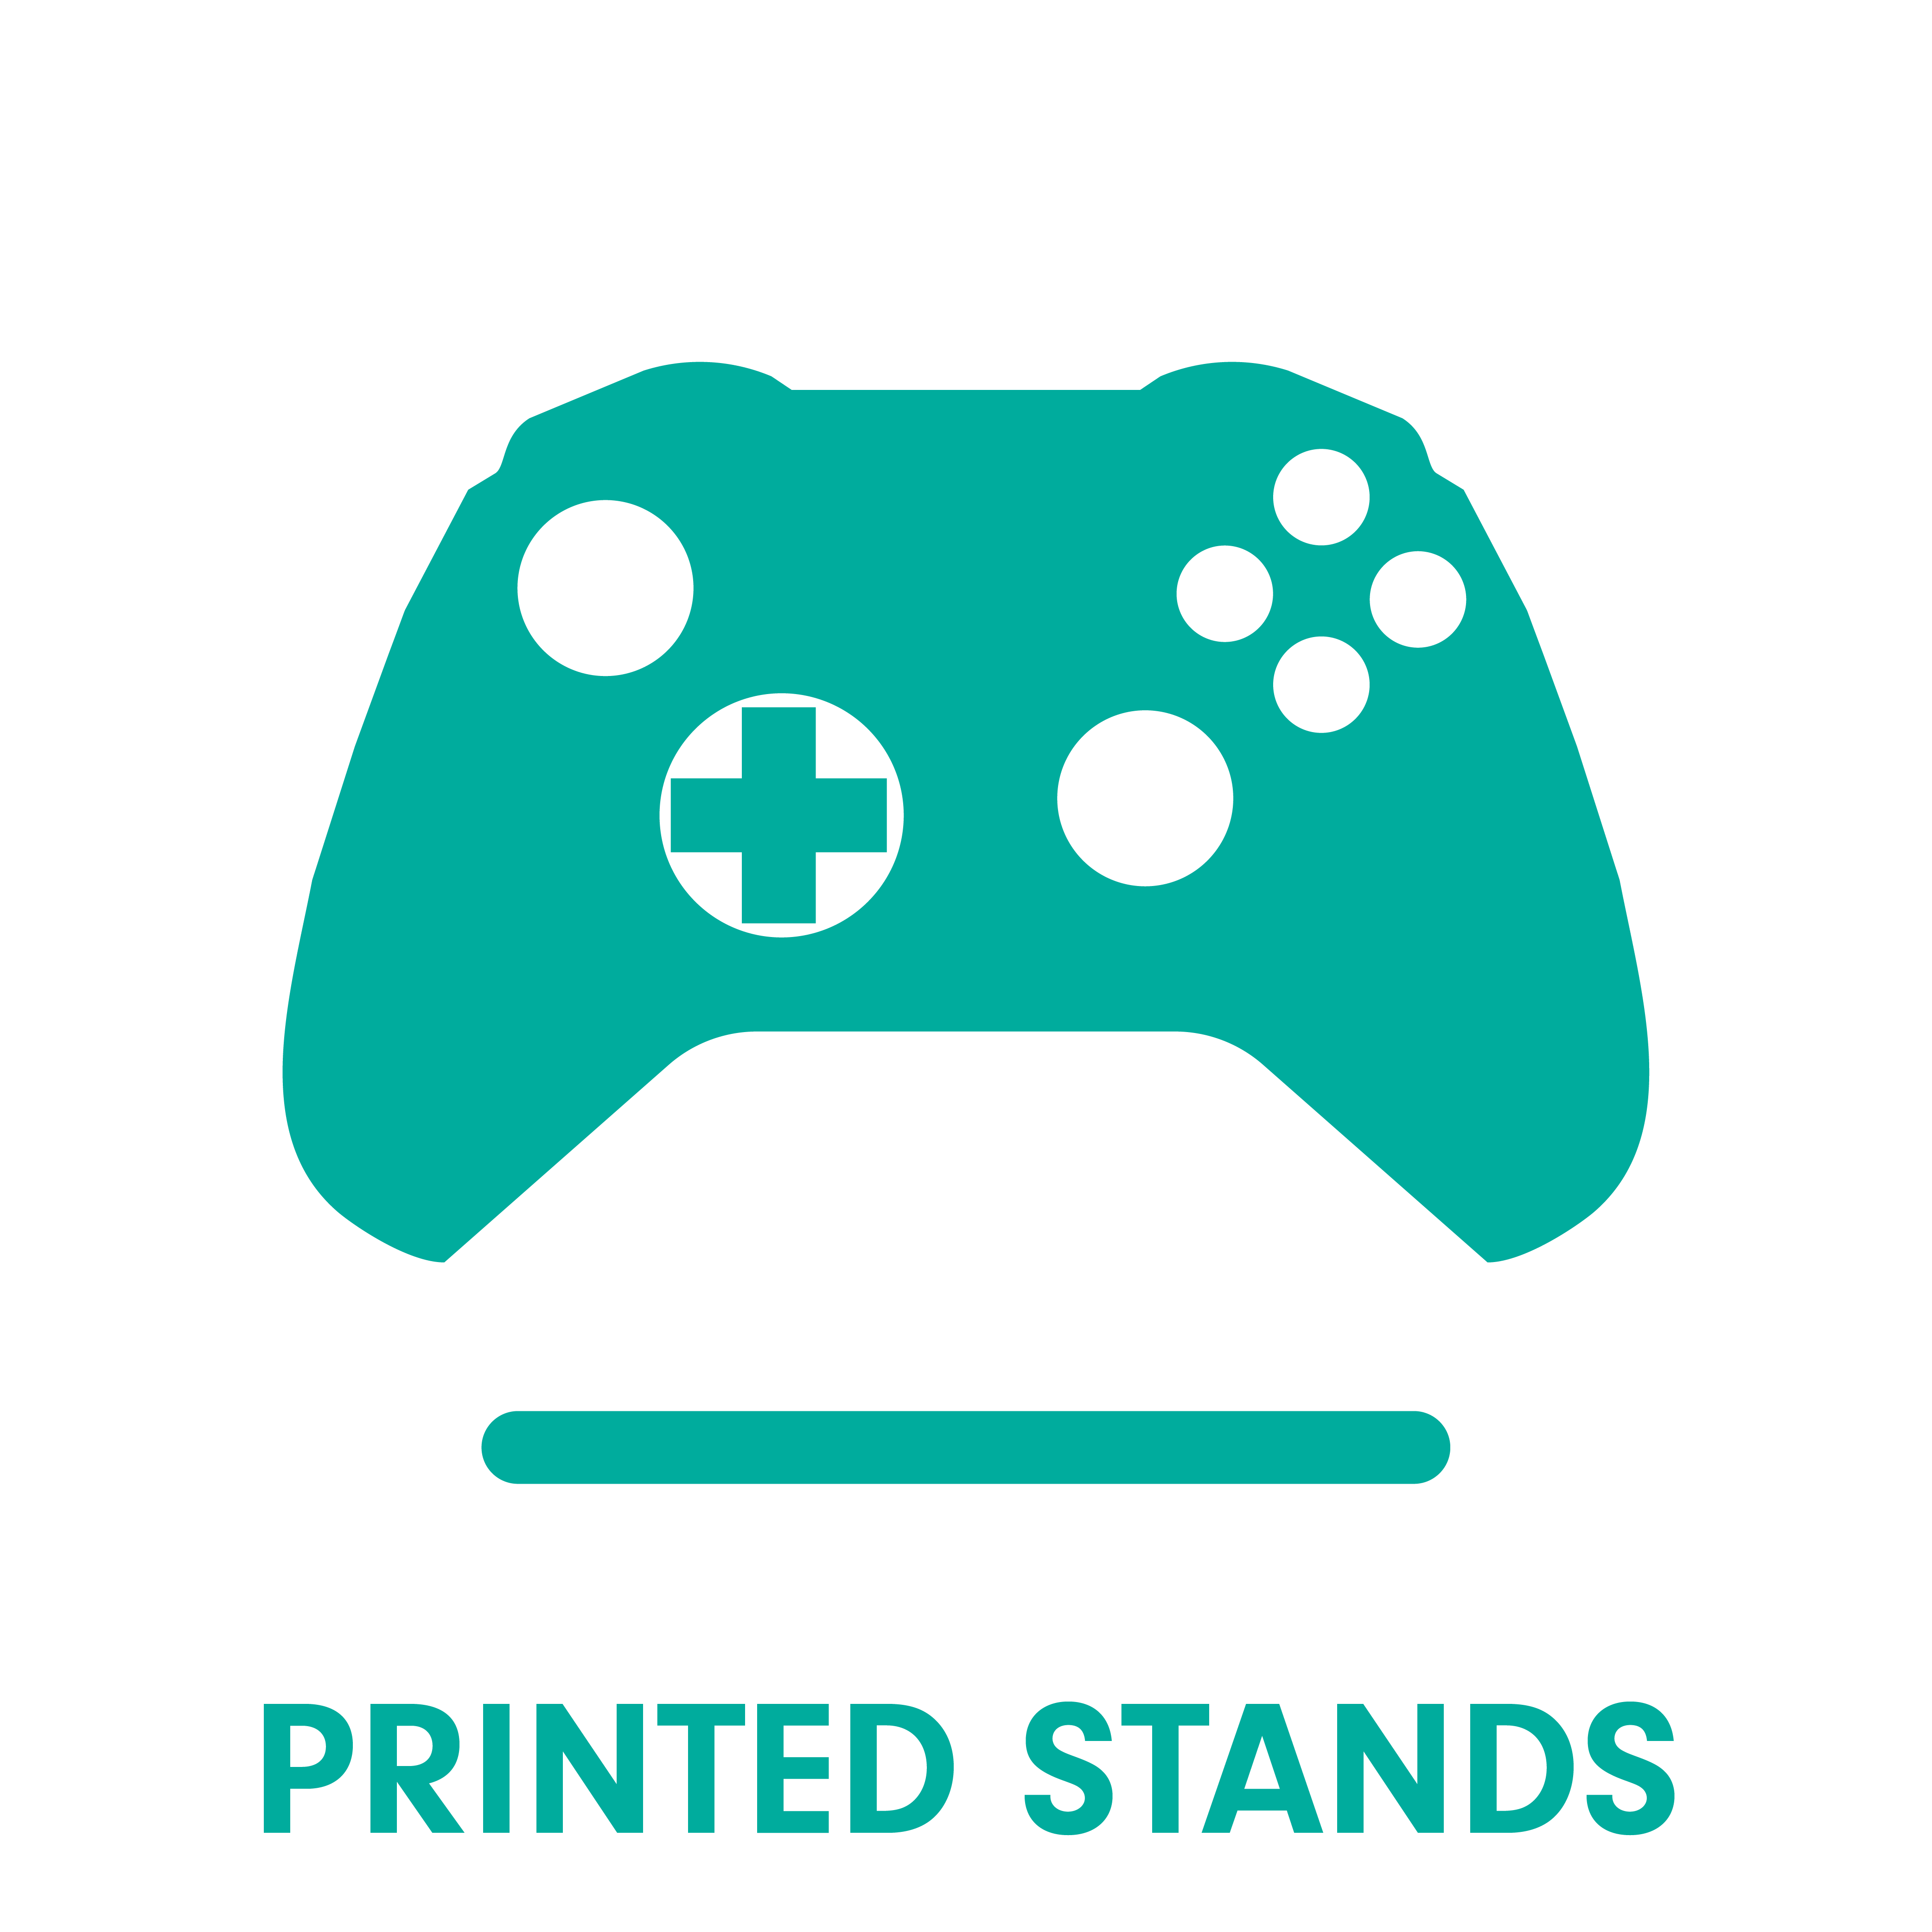 Printed Stands category icon